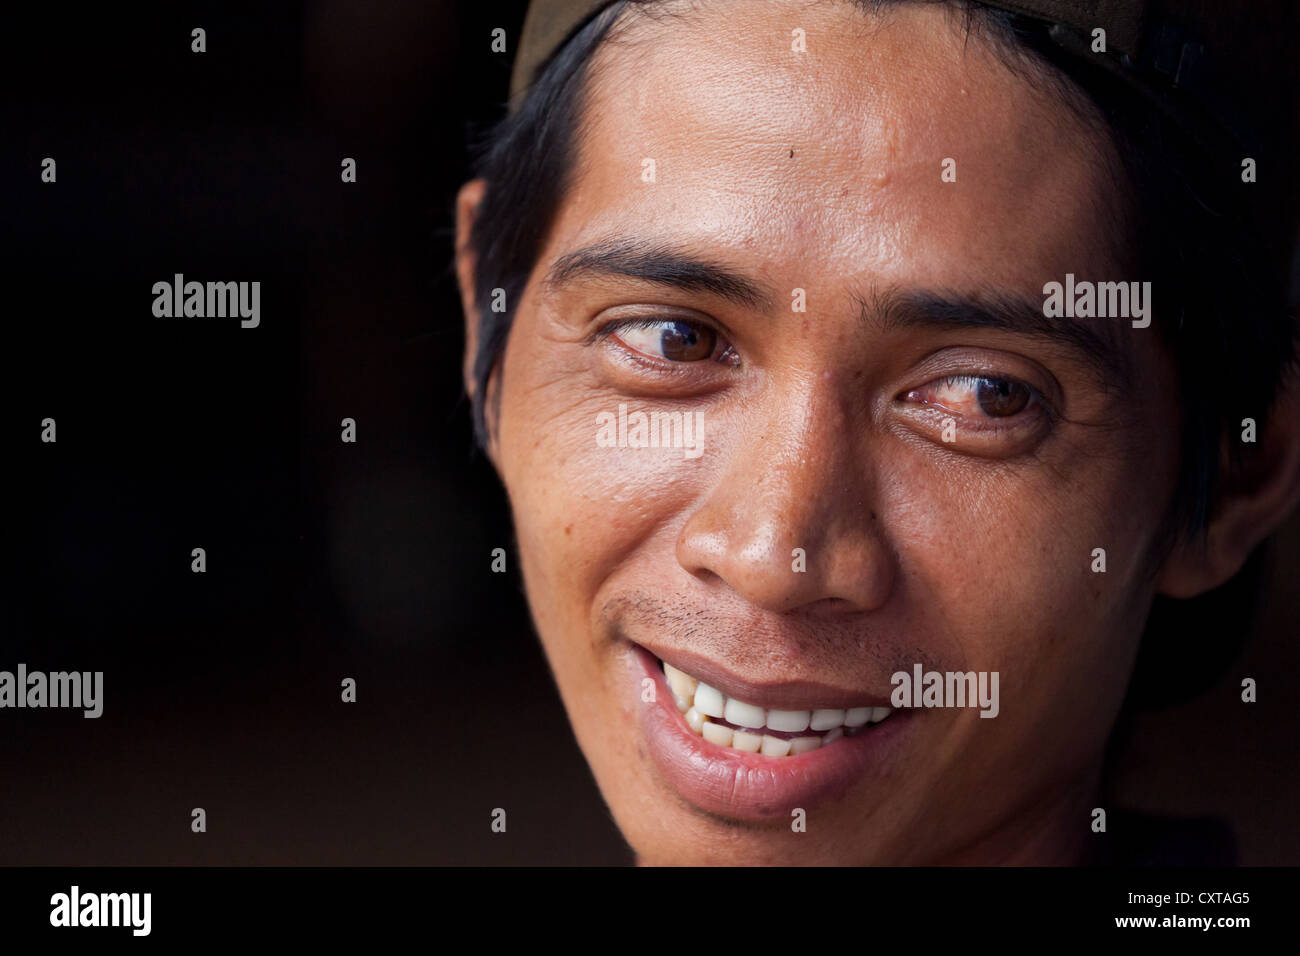 Close up portrait of an indonesian man in banjarmasin in south kalimantan indonesia